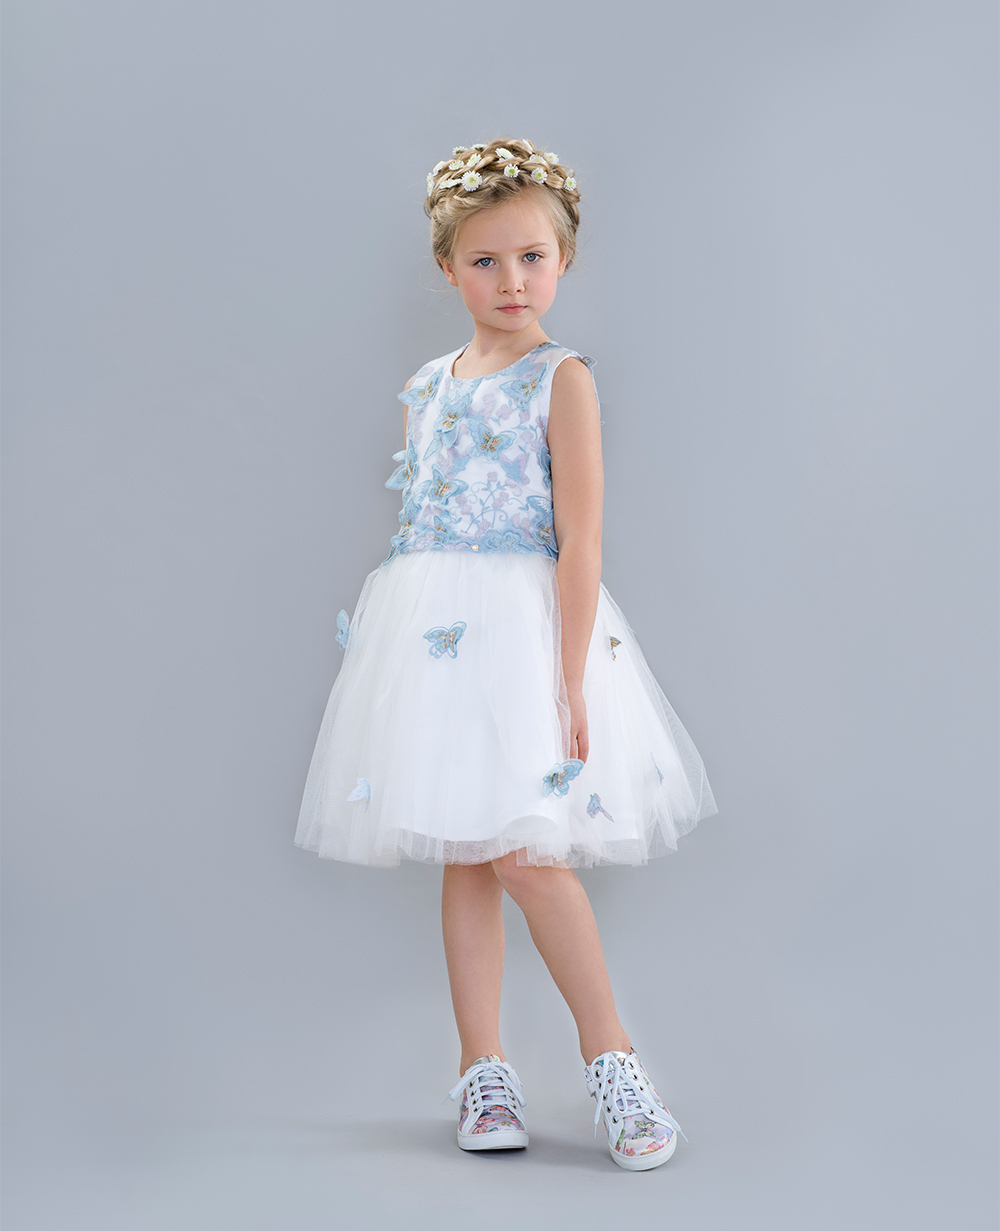 White and Blue Party Dress with Tuelle Skirt Sleeveless Wedding Dress